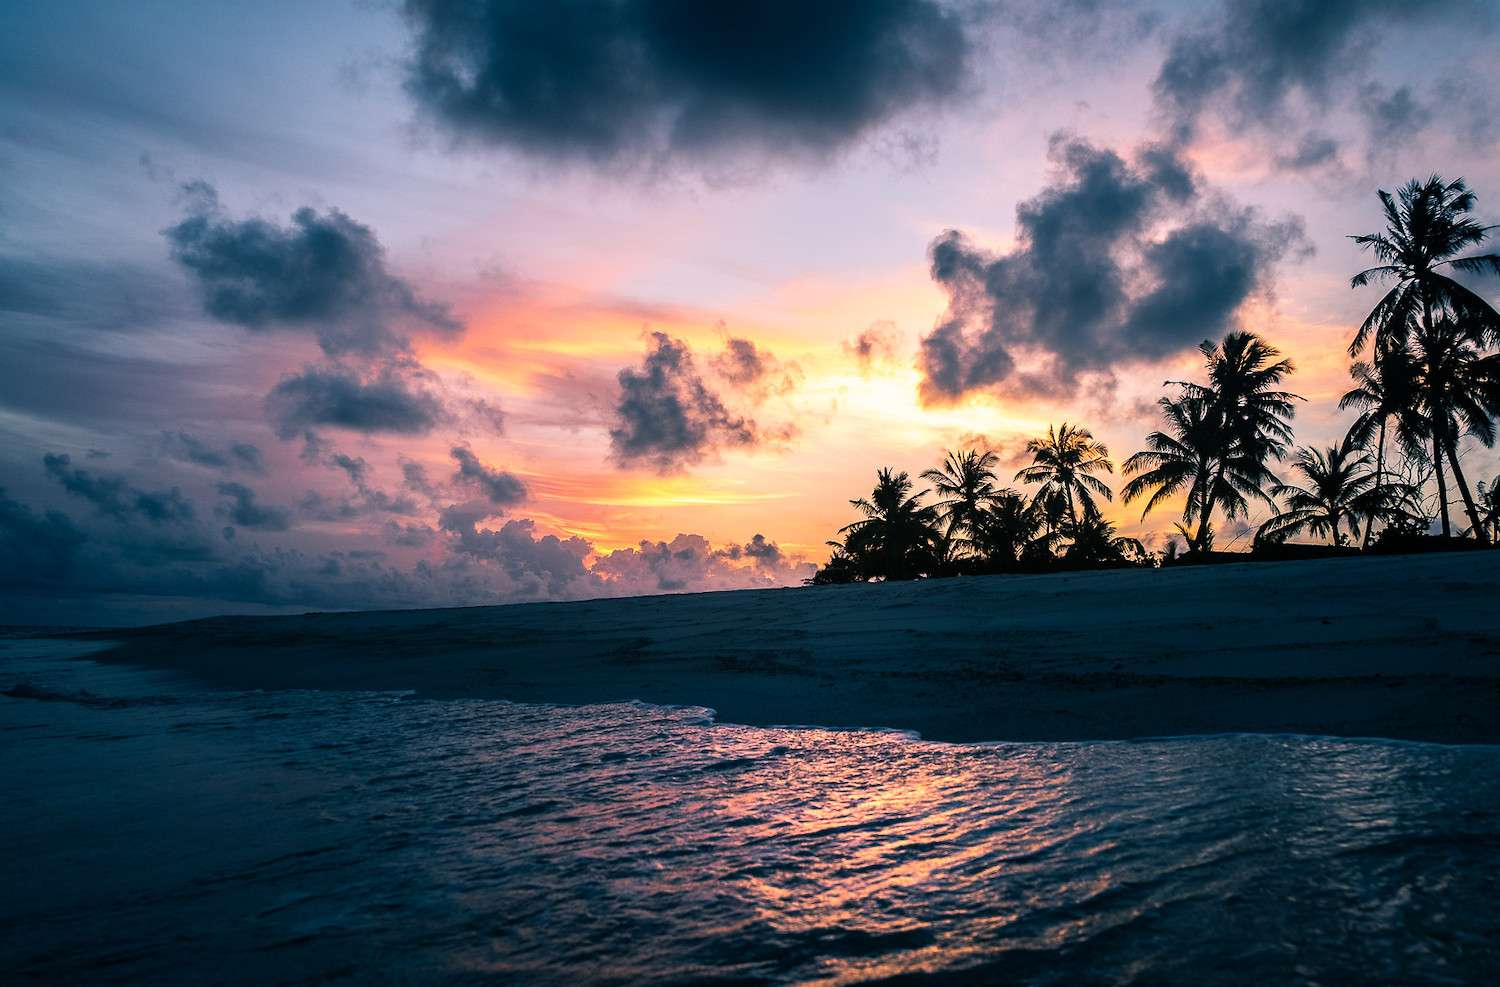 The sun sets of a beach with silhouetted palm trees in the Maldives